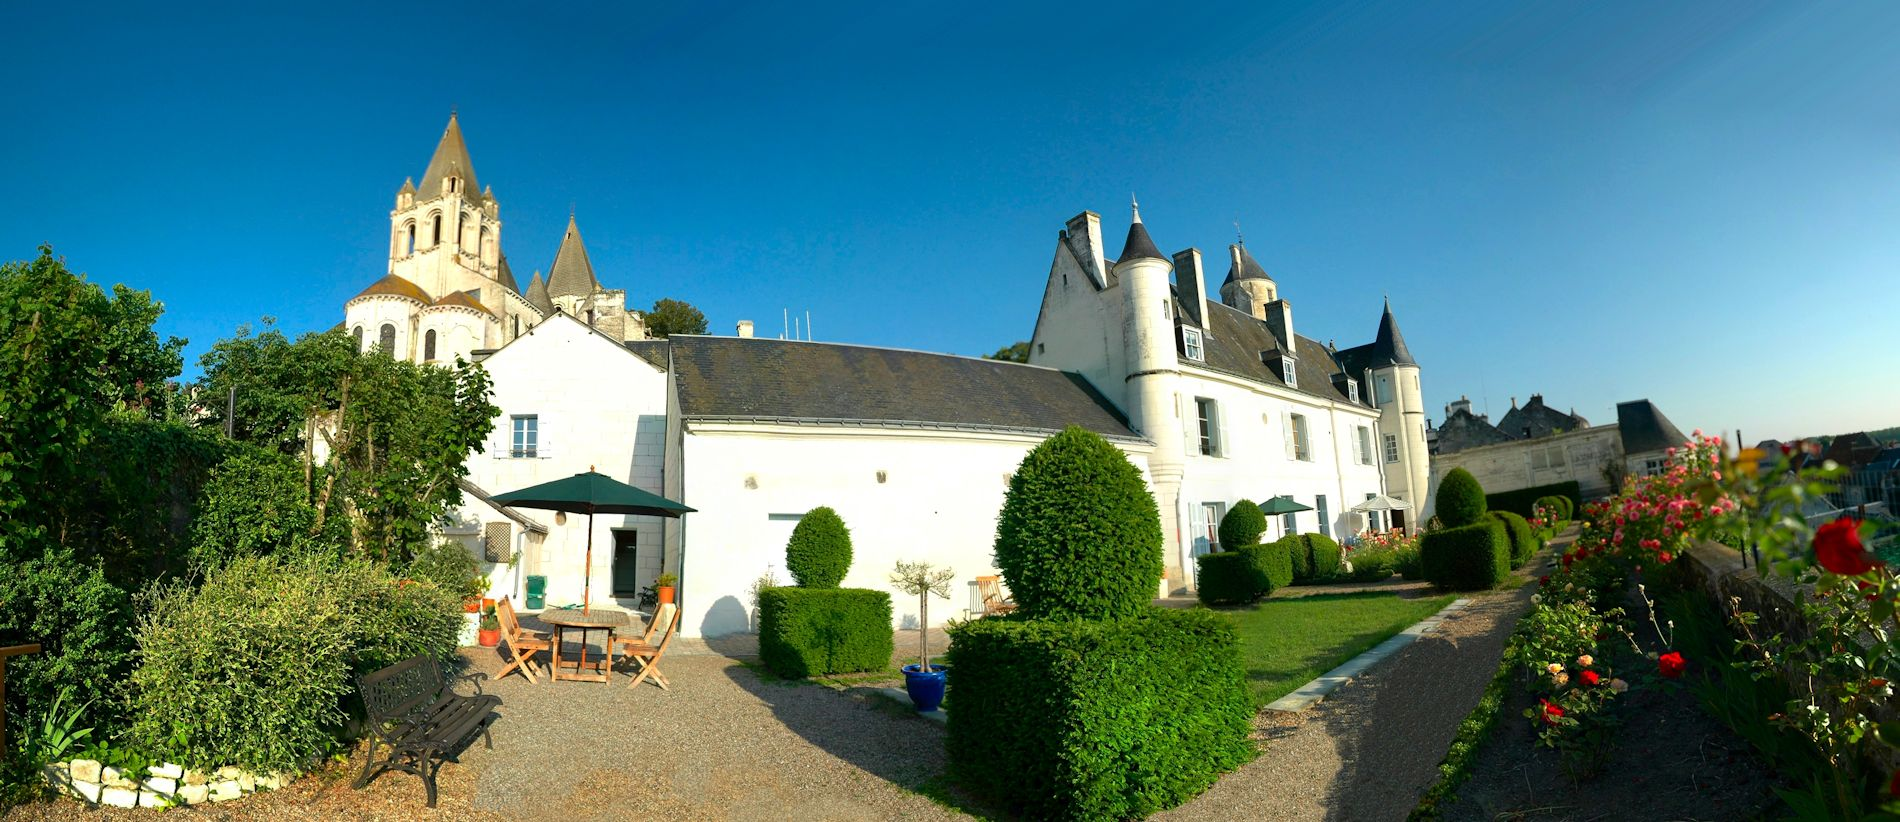 La Maison | bed and breakfast argentier du roy | loire valley | france